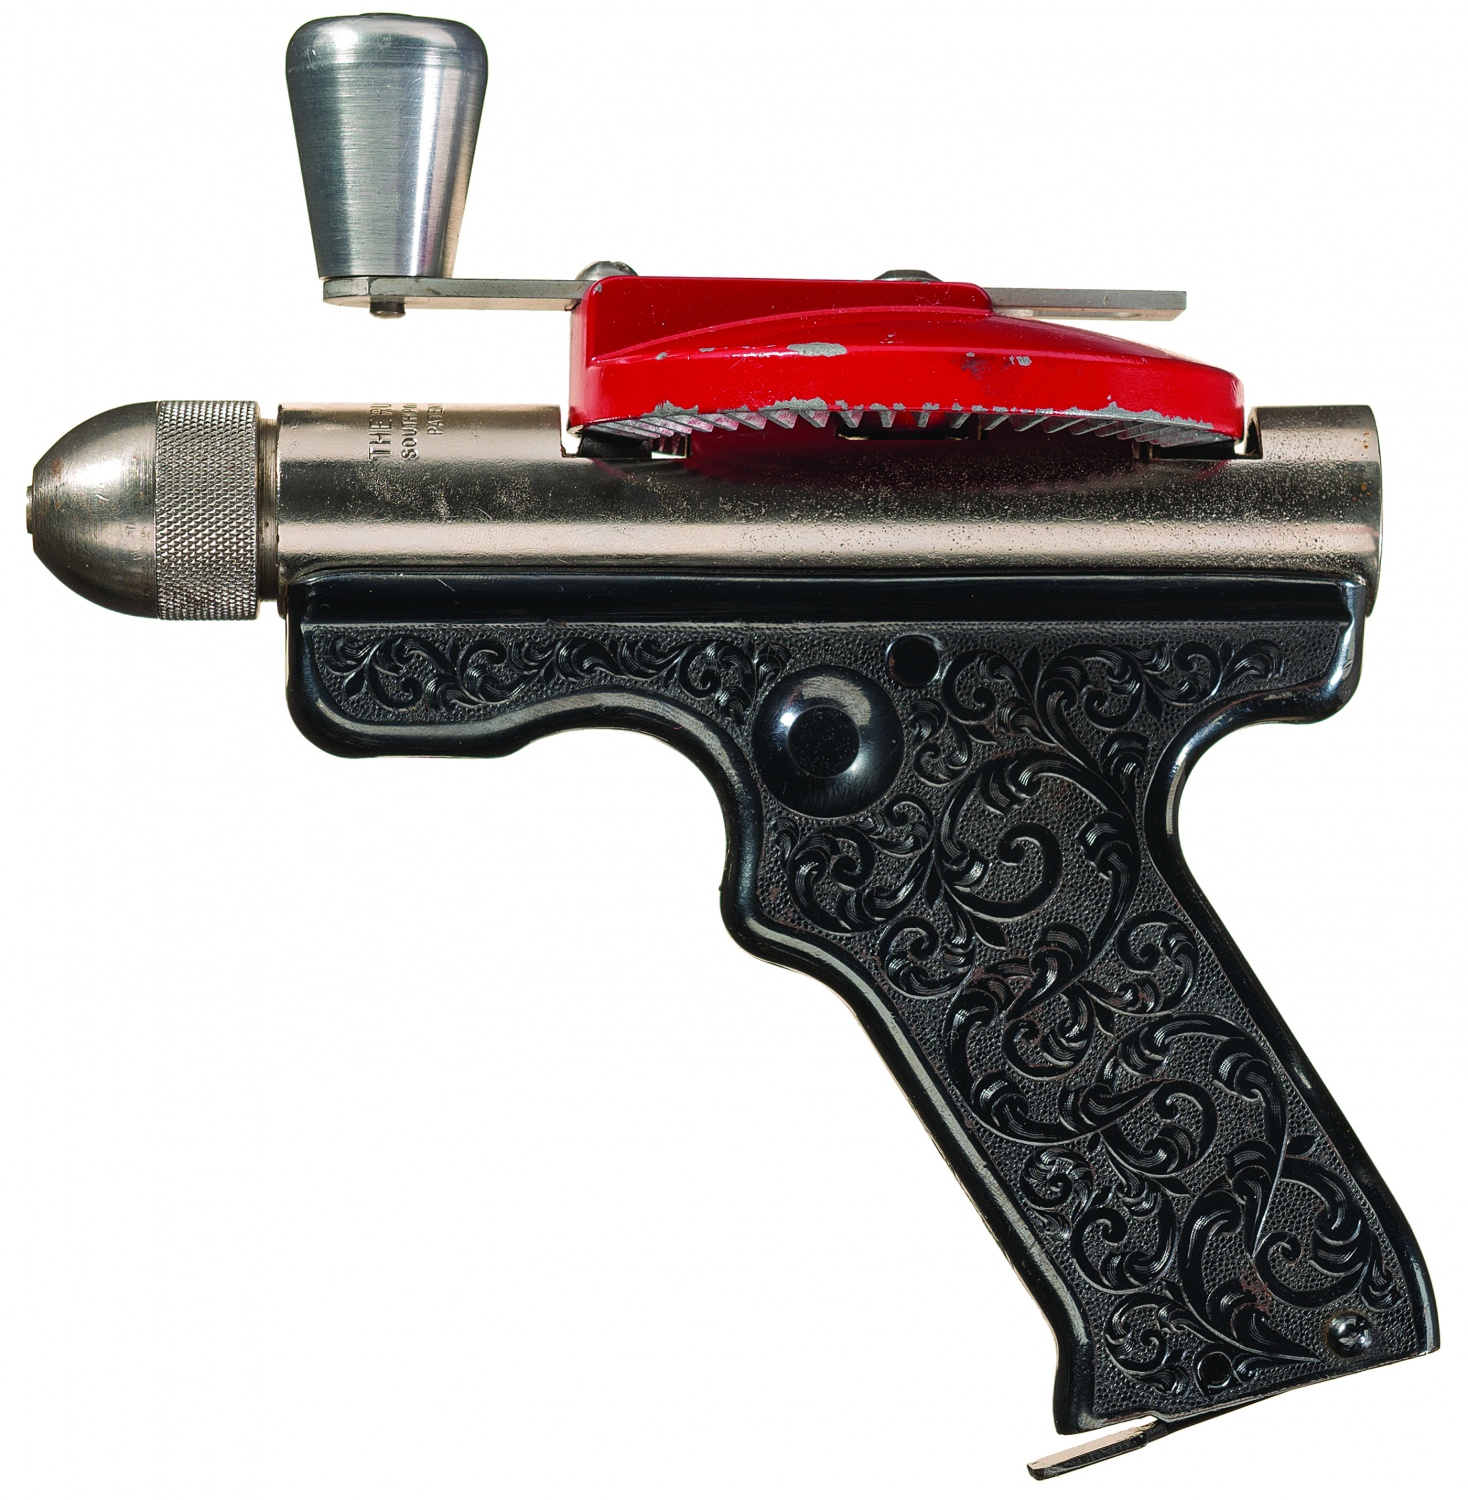 Most Unusual Ruger Products Ever Made Ruger Hand Drills (2)